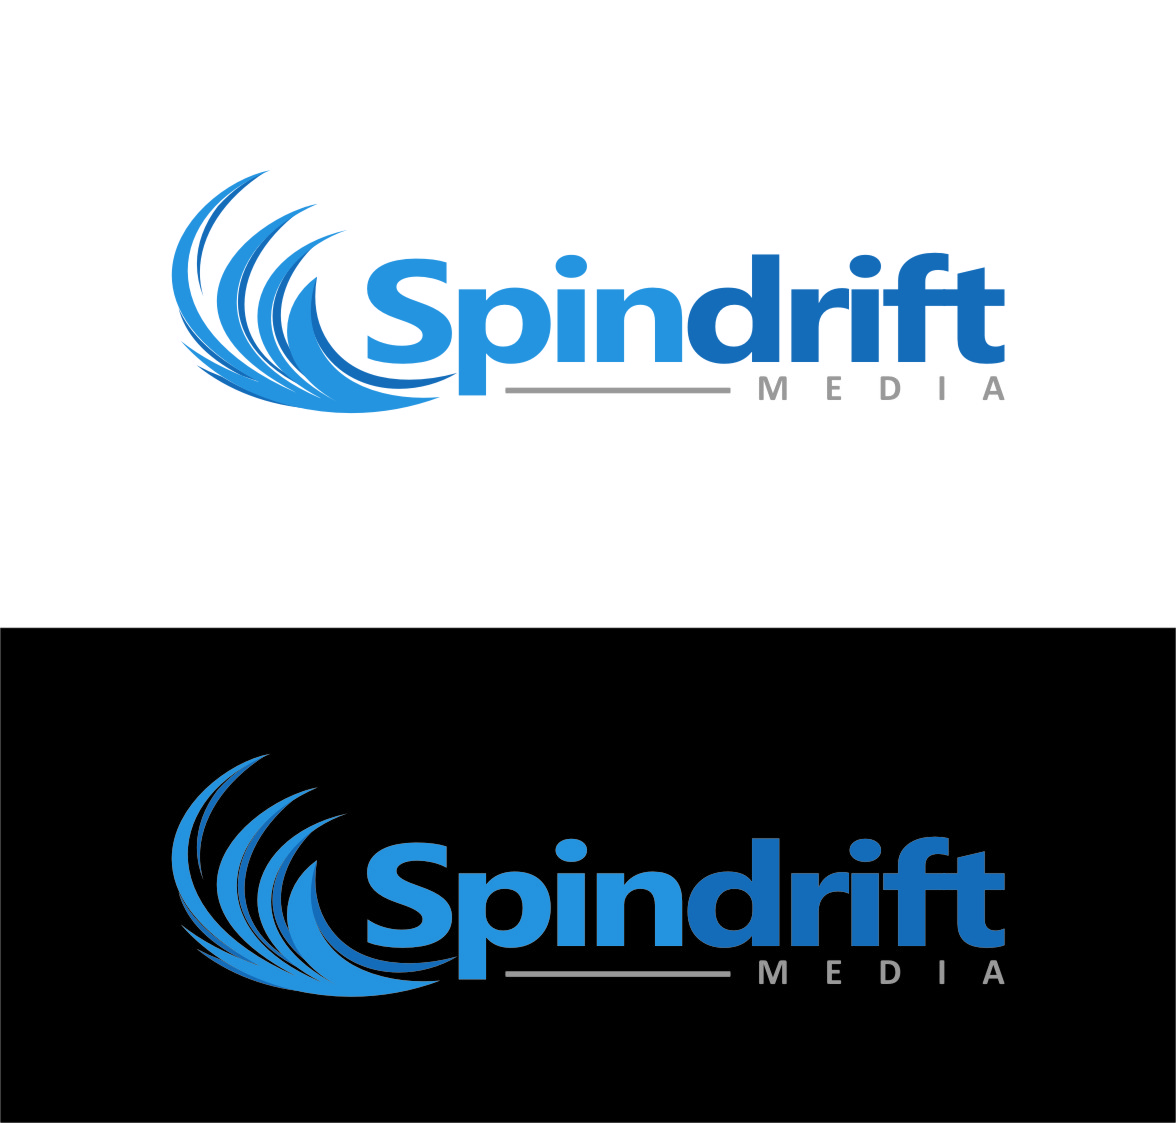 Logo Design by Ngepet_art - Entry No. 84 in the Logo Design Contest Inspiring Logo Design for Spindrift Media.